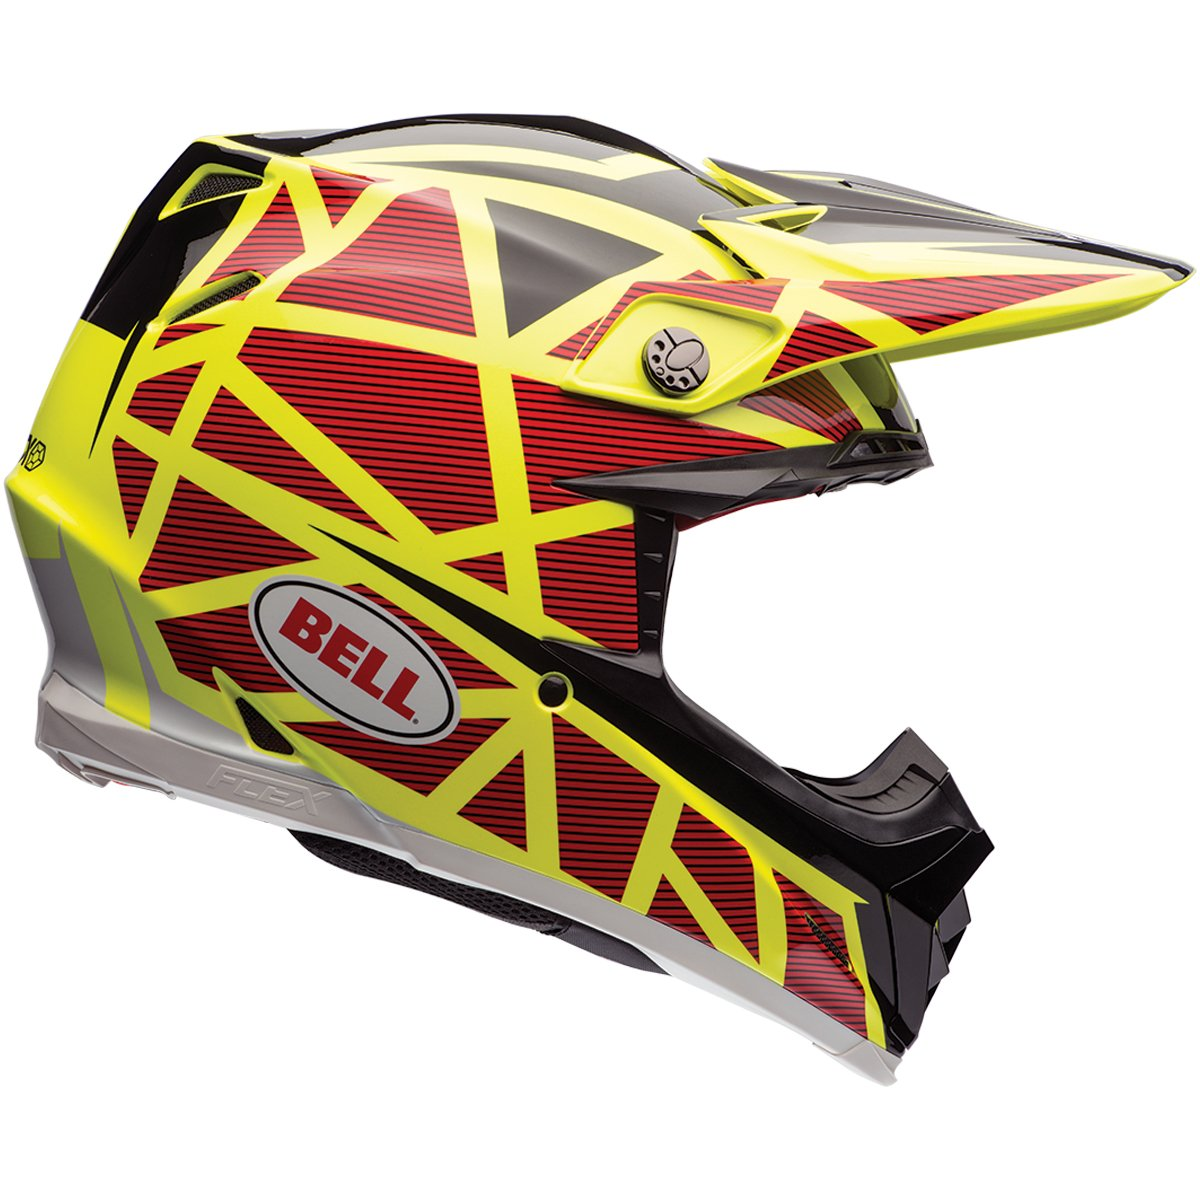 Amazon.com: Bell Moto-9 Flex Tagger Rekluse Motocross Helmet - 2X-Large: Automotive